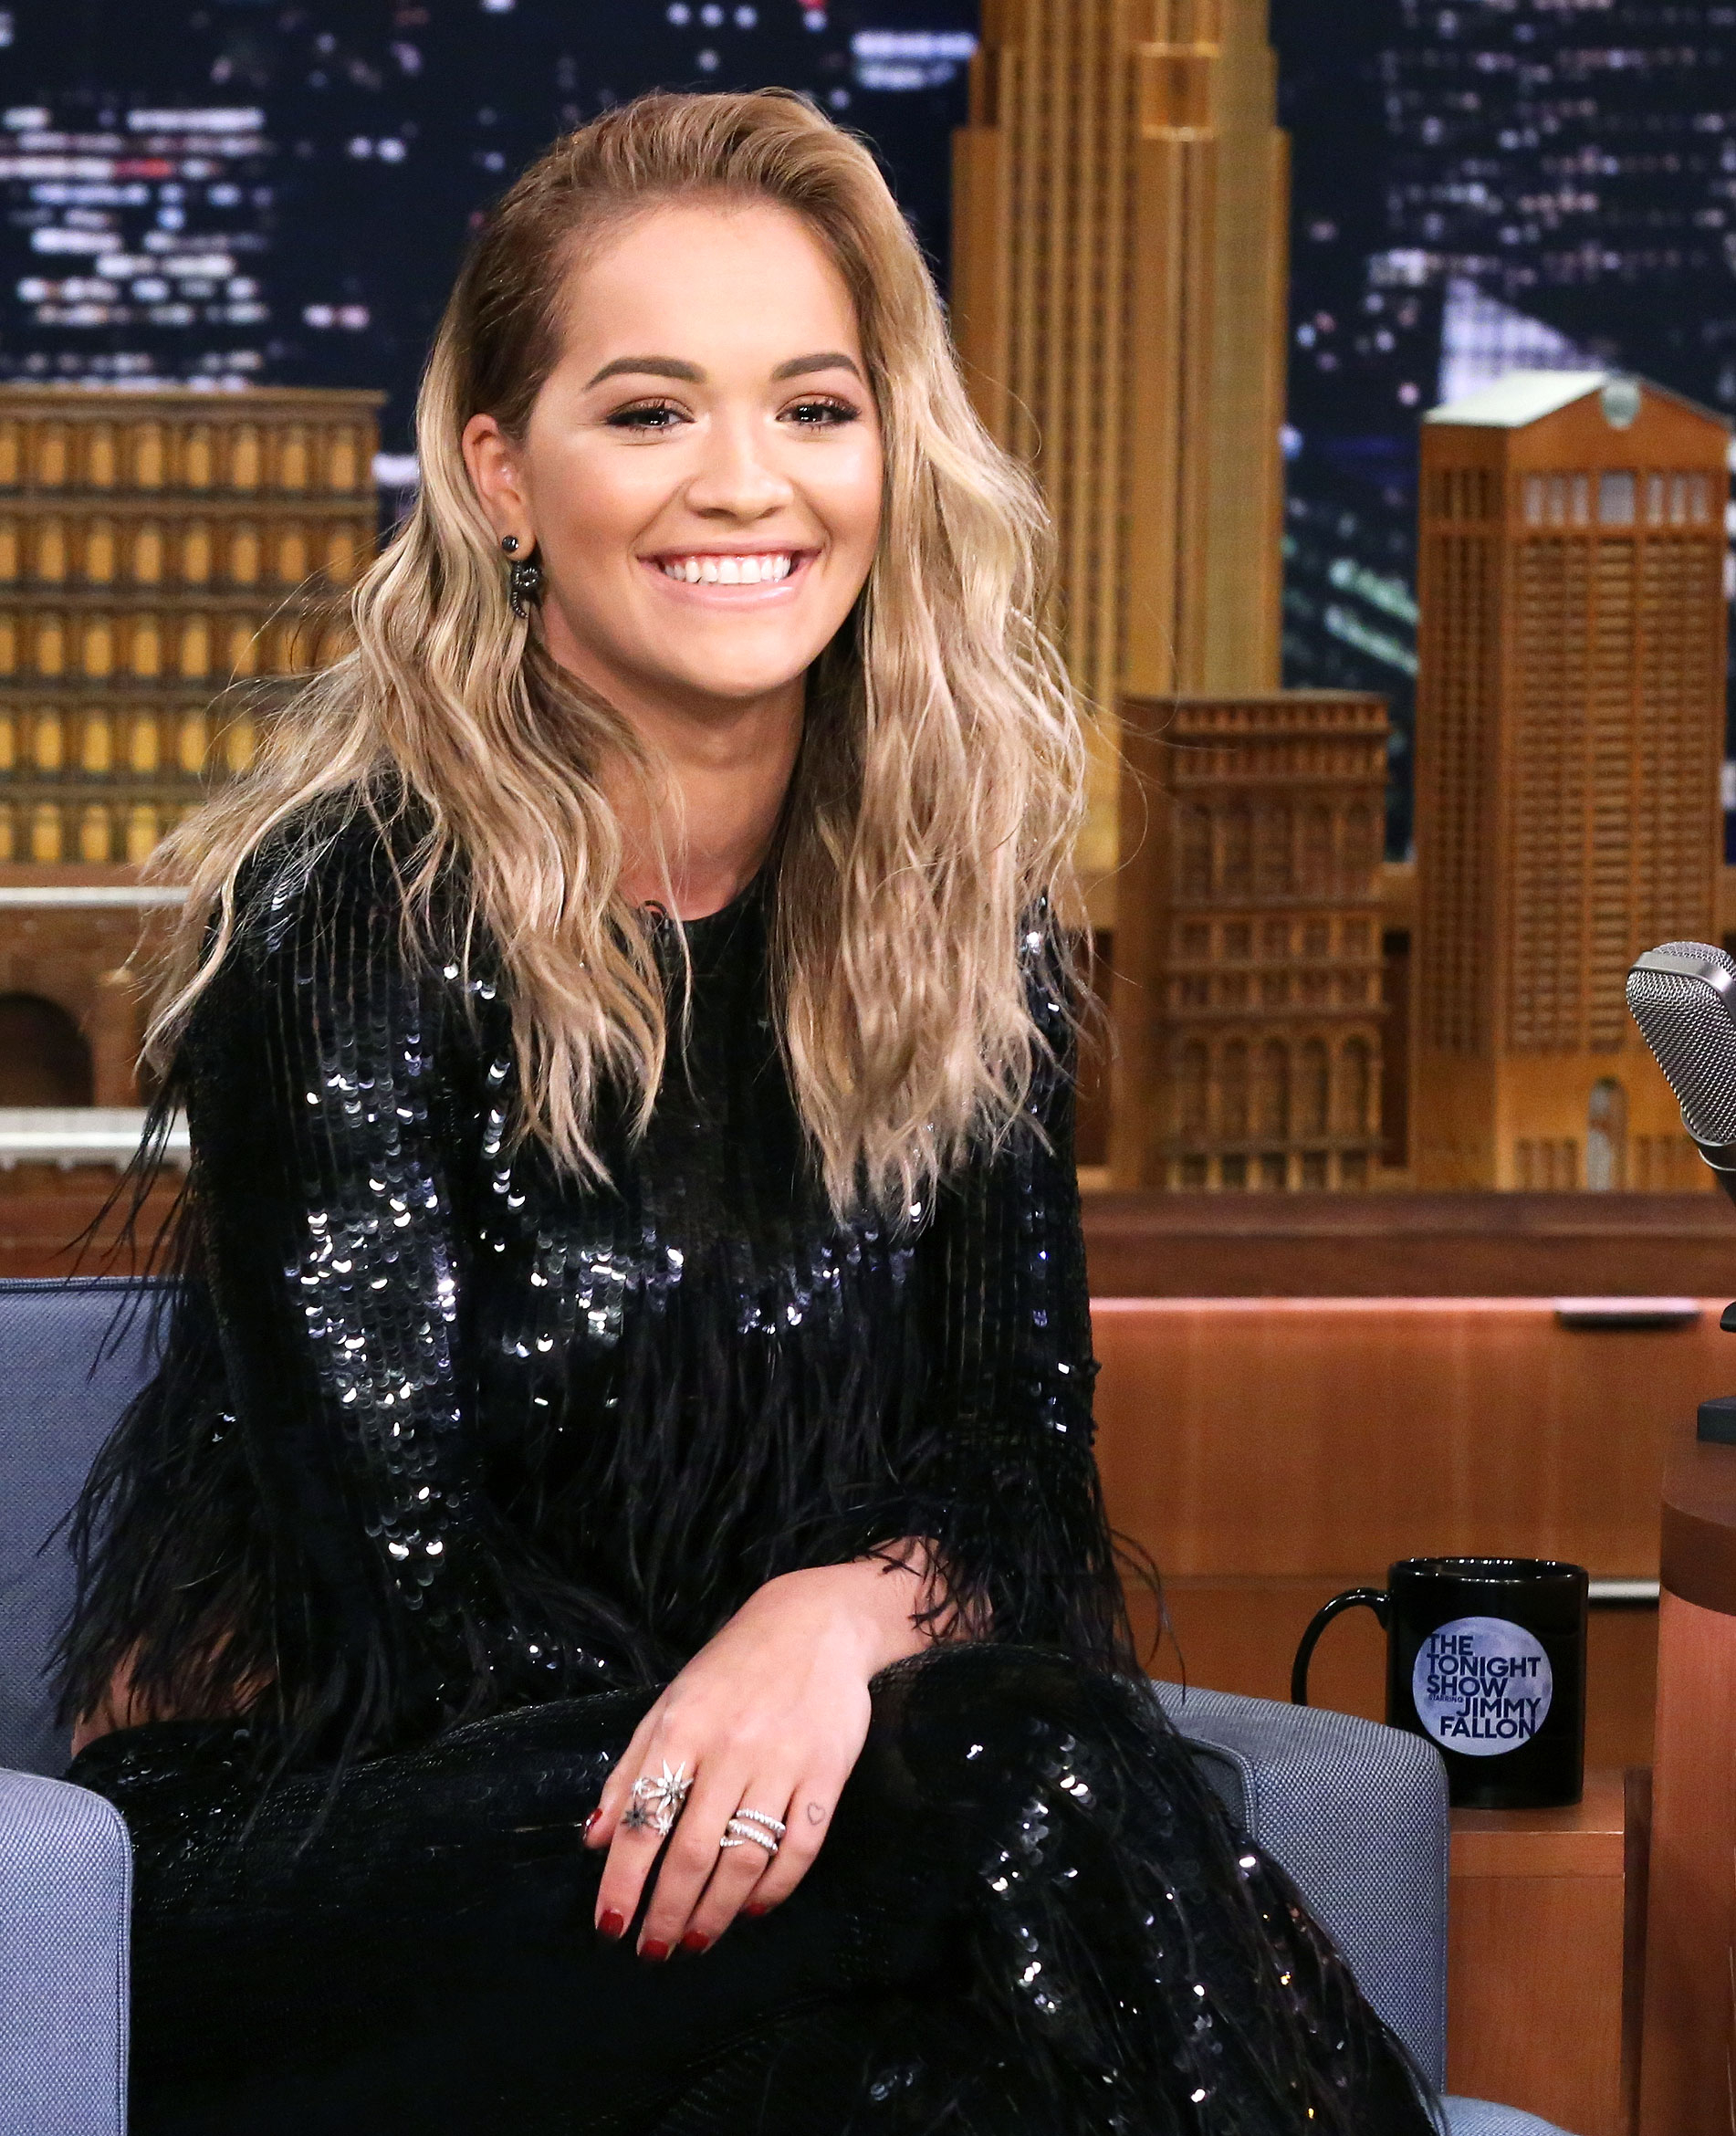 Rita Ora Ditches Bleached Blonde Hair Color For Dark Ombre